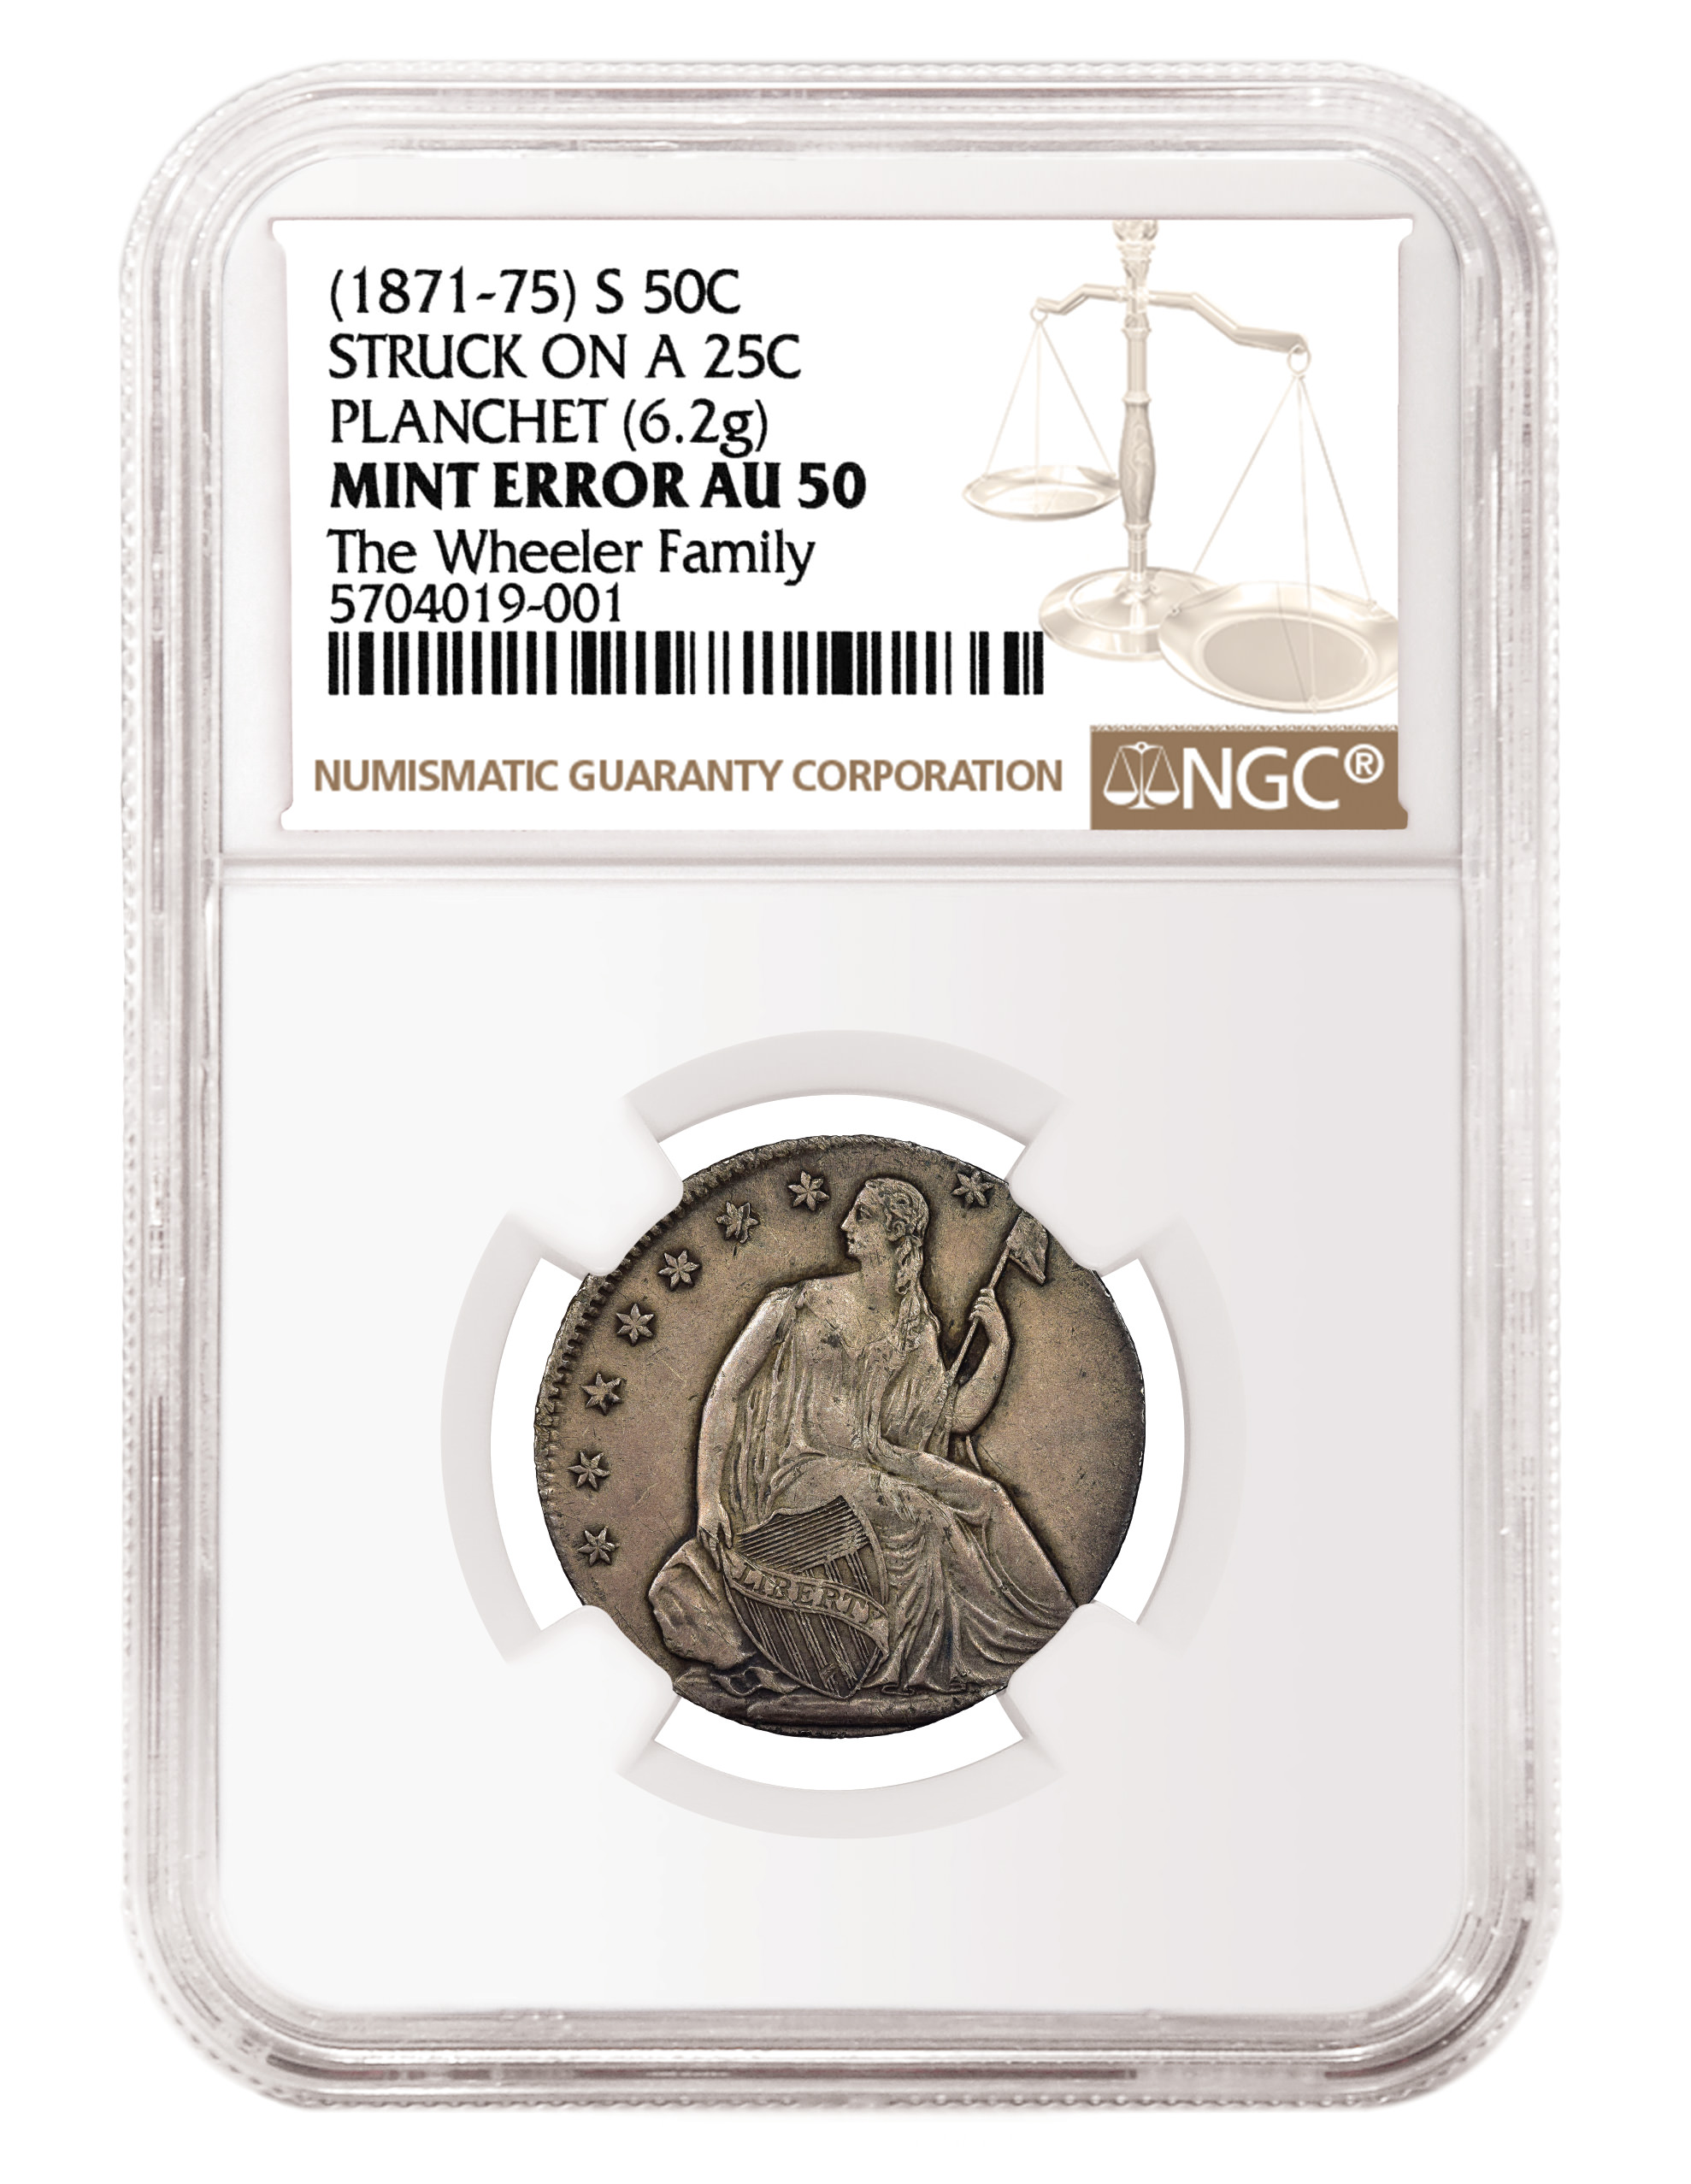 main image for Freak of Nature! Seated Half Struck on Quarter Planchet Certified by NGC